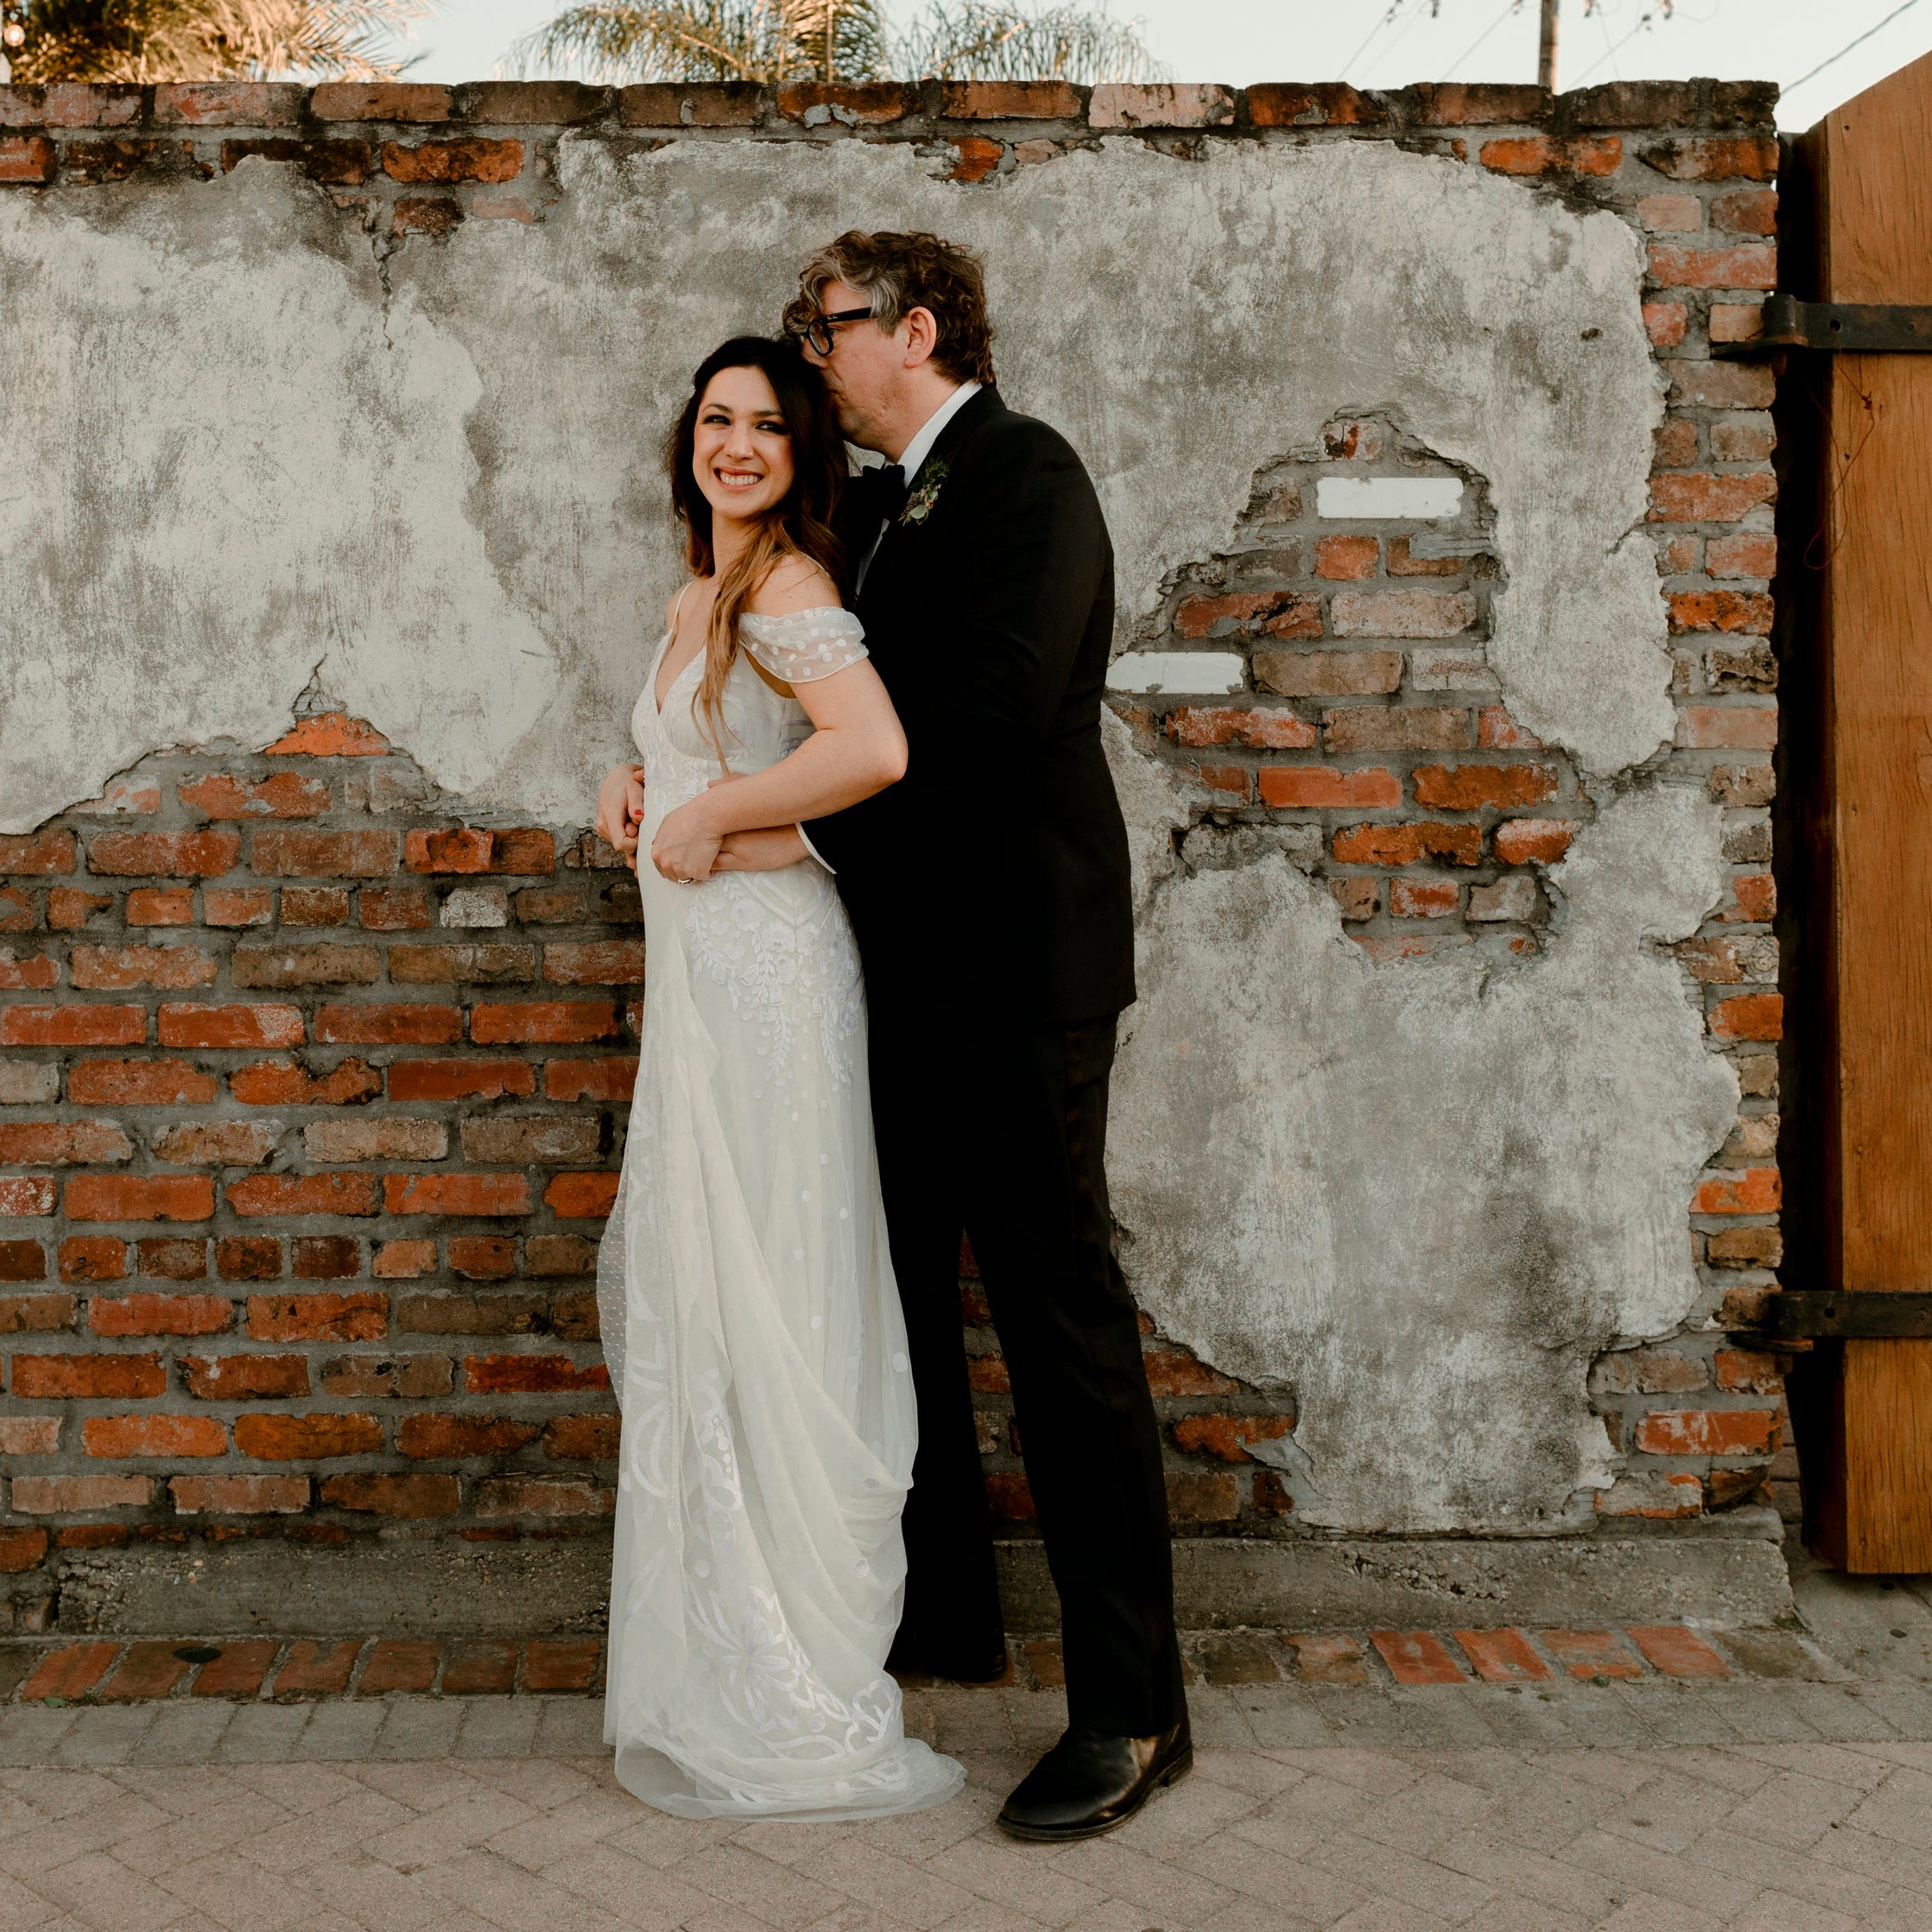 In this Saturday, April 20, 2019, photo provided by Katch Silva, Michelle Branch and Patrick Carney pose for a photo in New Orleans. The Grammy-winning musicians tied the knot Saturday at the Marigny Opera House in front of close friends and family, a representative for Carney told The Associated Press on Sunday. (Katch Silva via AP) ORG XMIT: NYJK710